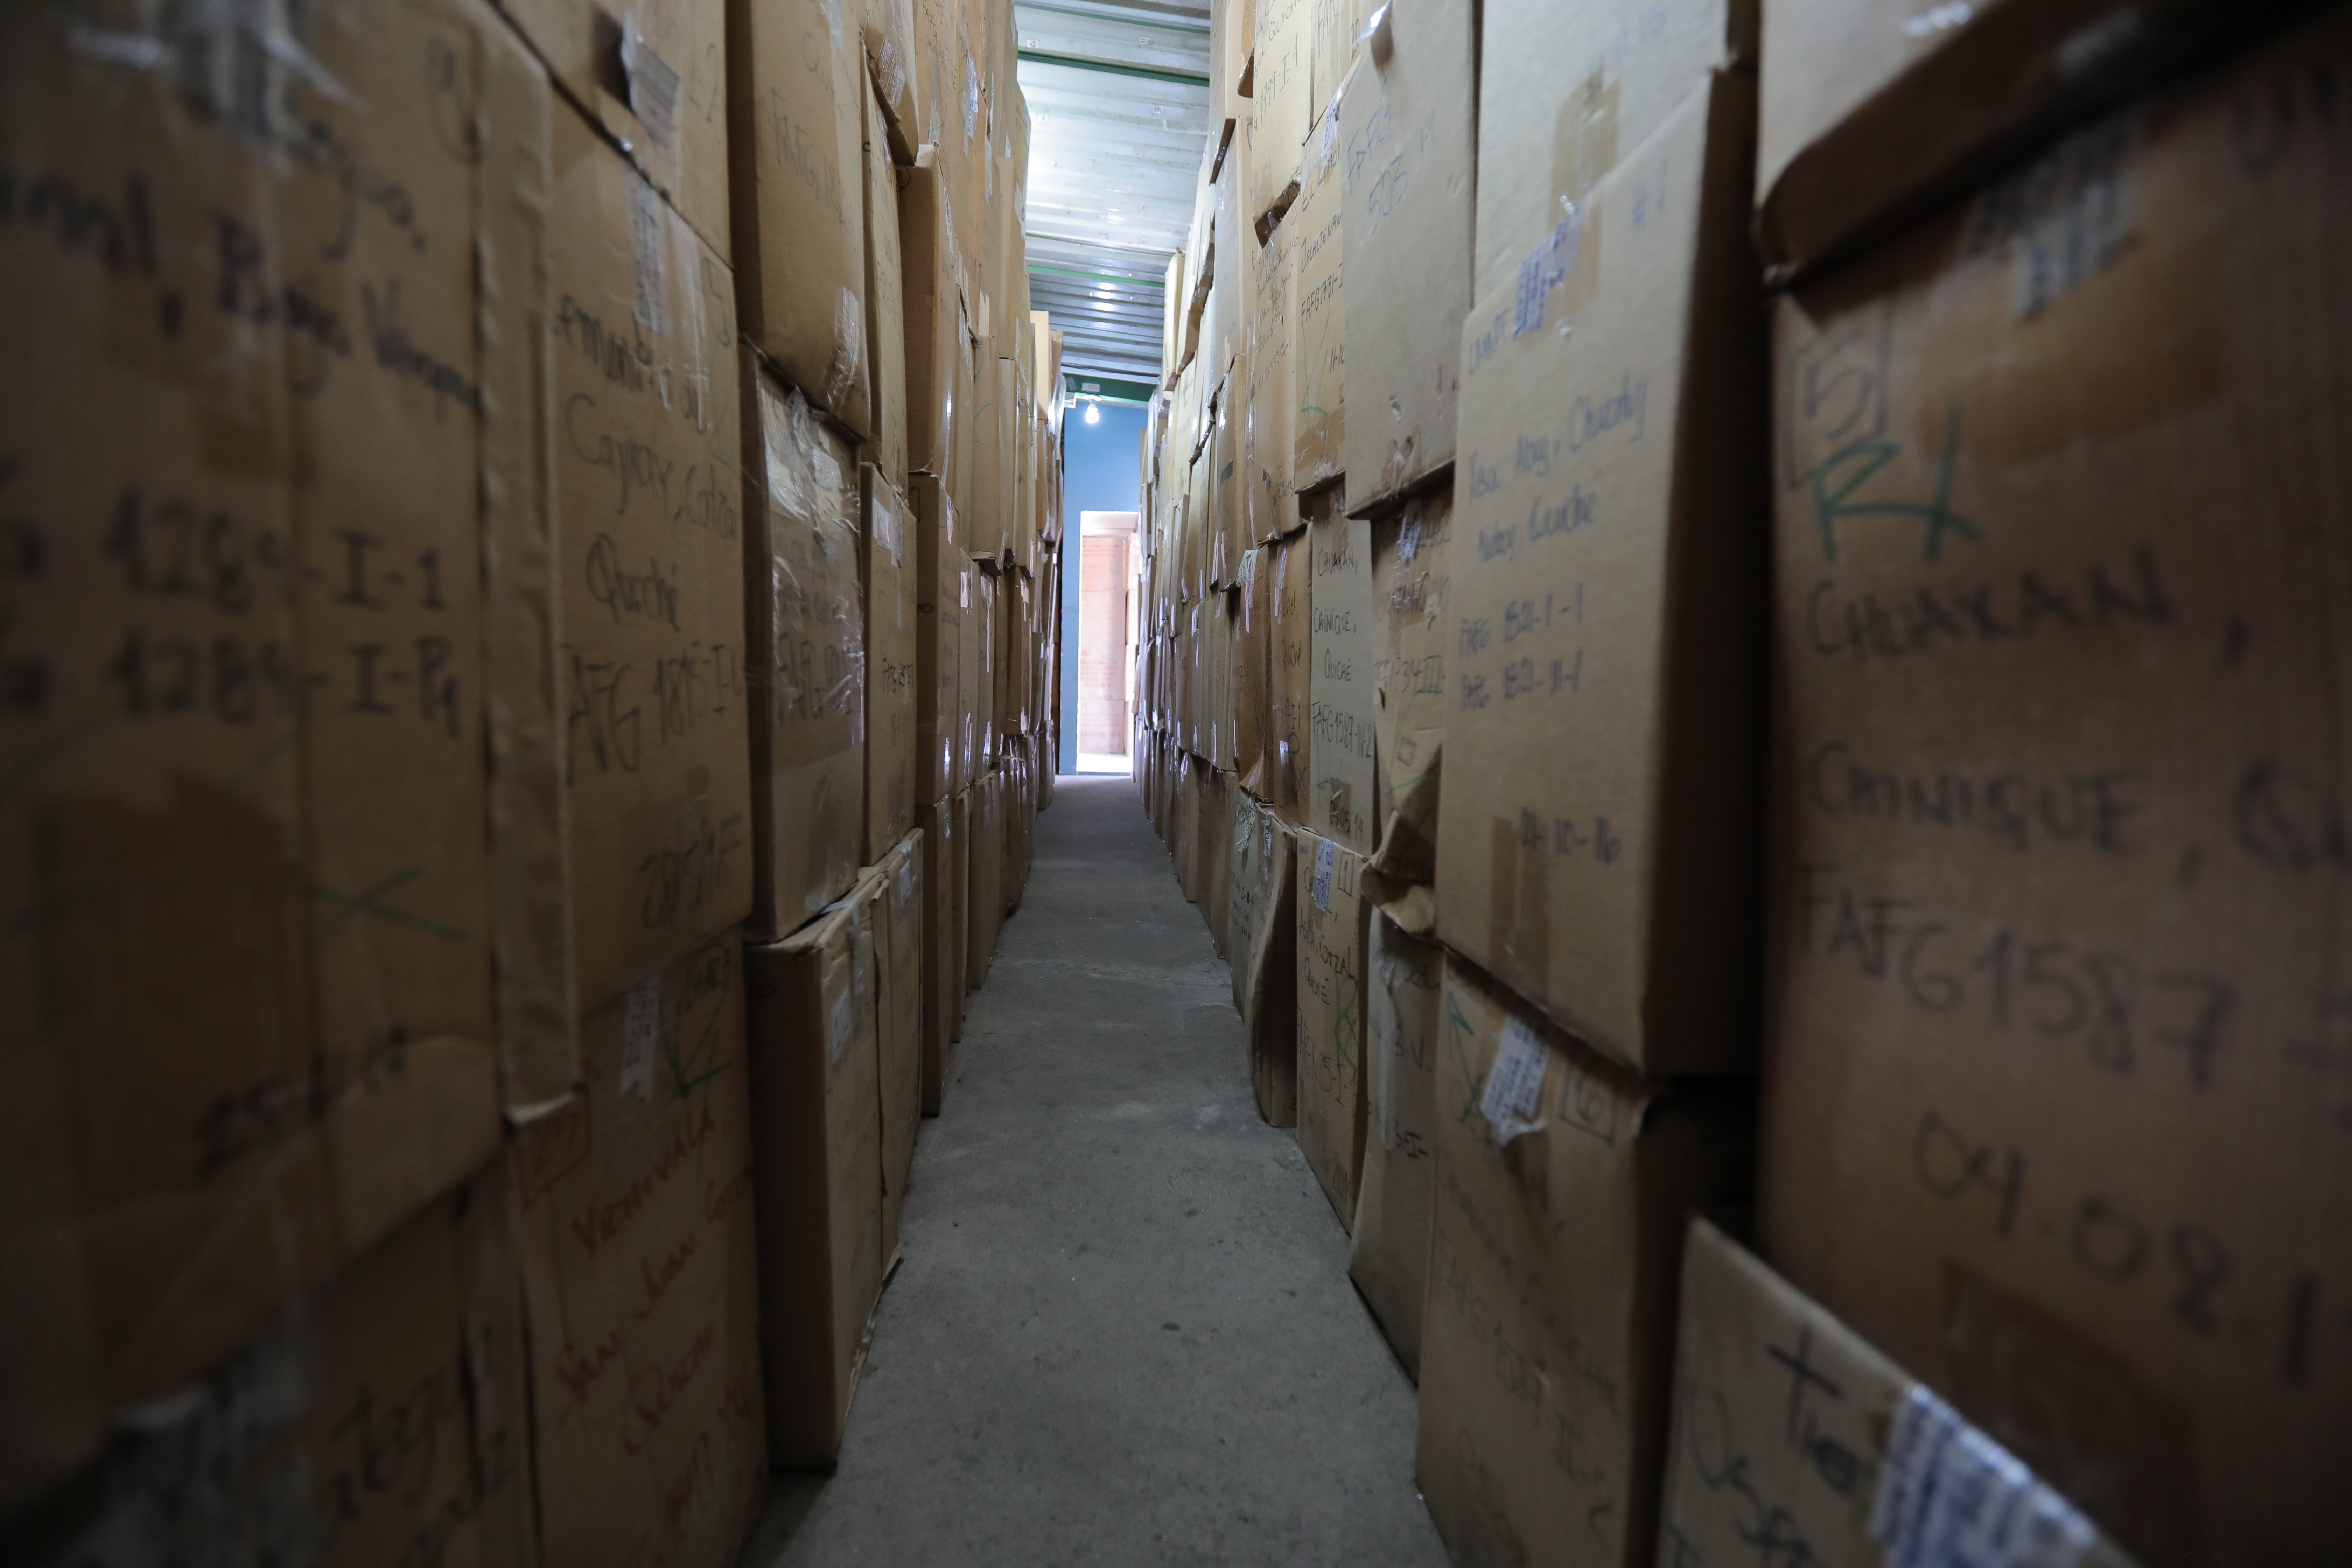 Boxes containing remains from mass graves wait to be identified at FAFG headquarters in central Guatemala City. (Nahlah Ayed/CBC)